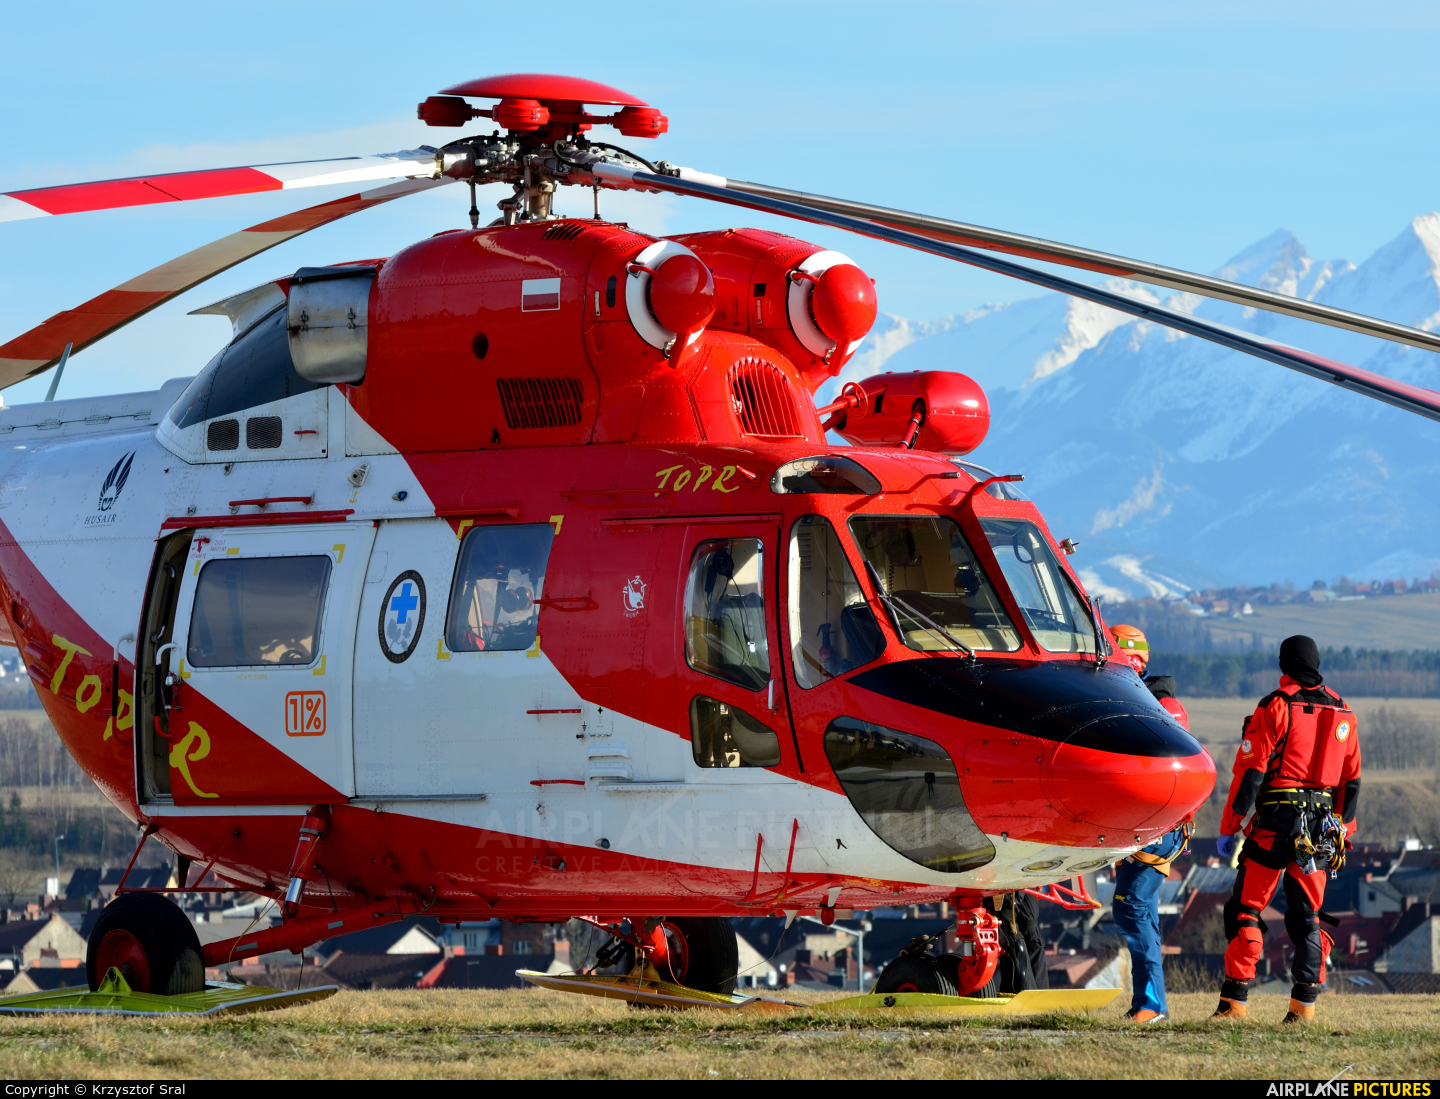 Tatra Mountains Rescue (TOPR) SP-SXW aircraft at Nowy Targ